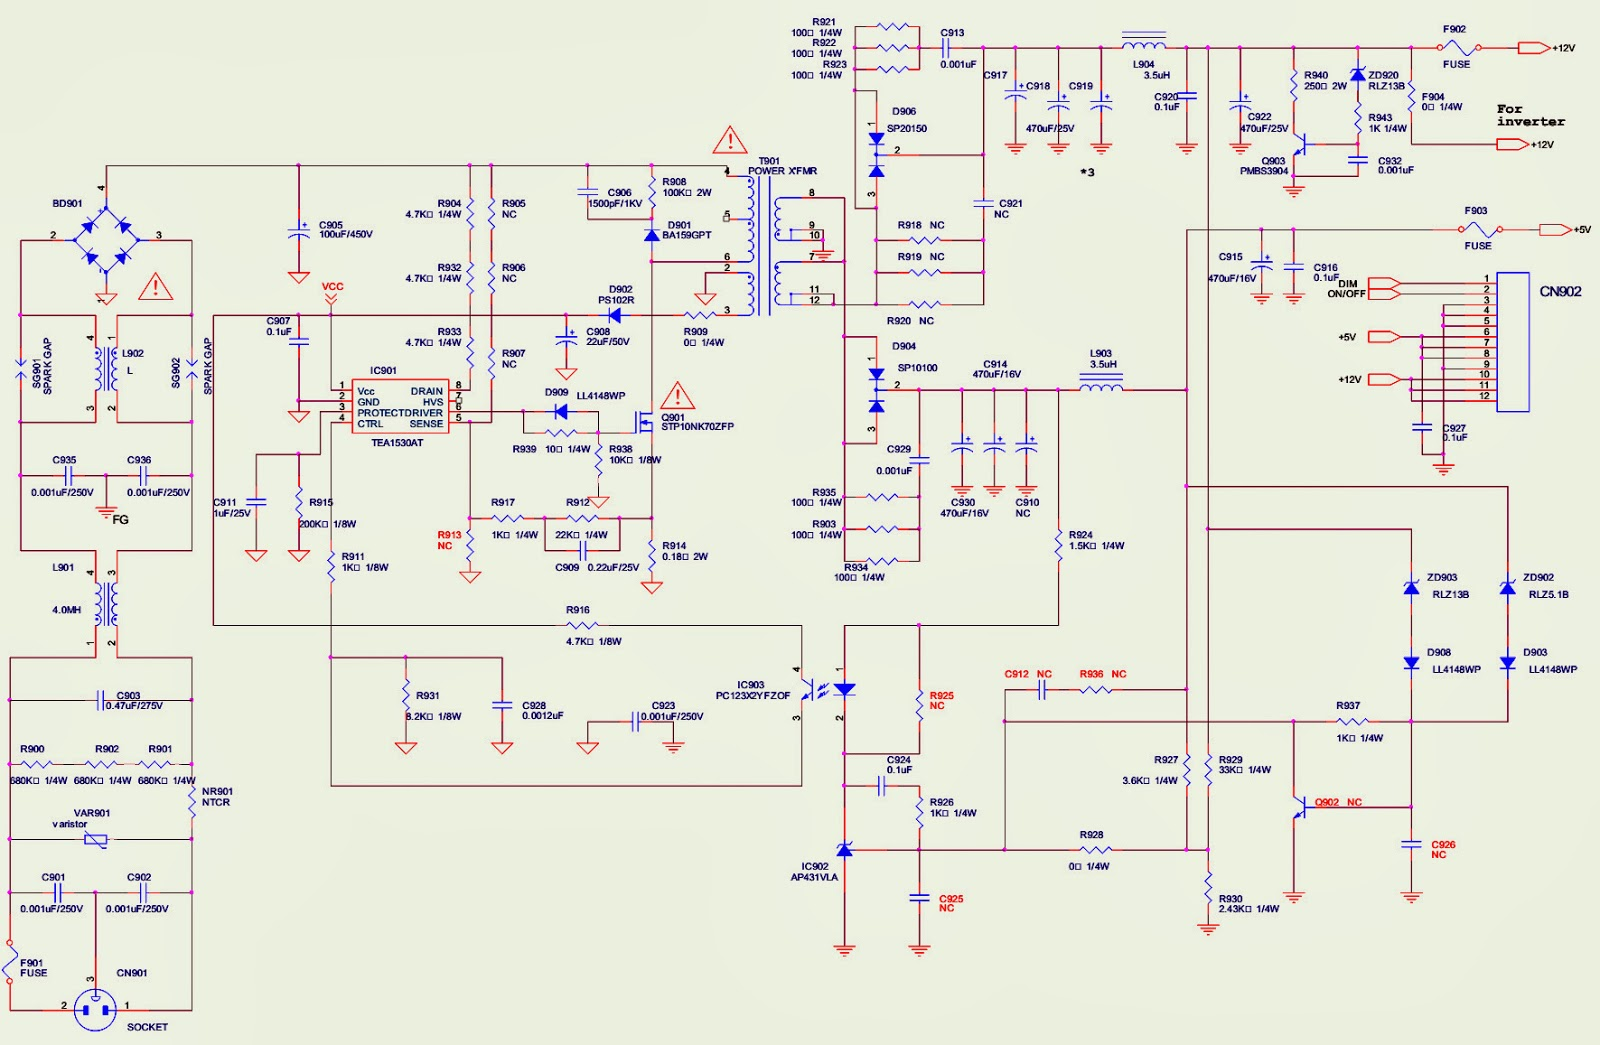 small resolution of aoc 212va monitor power supply schematic circuit diagram troubleshooting